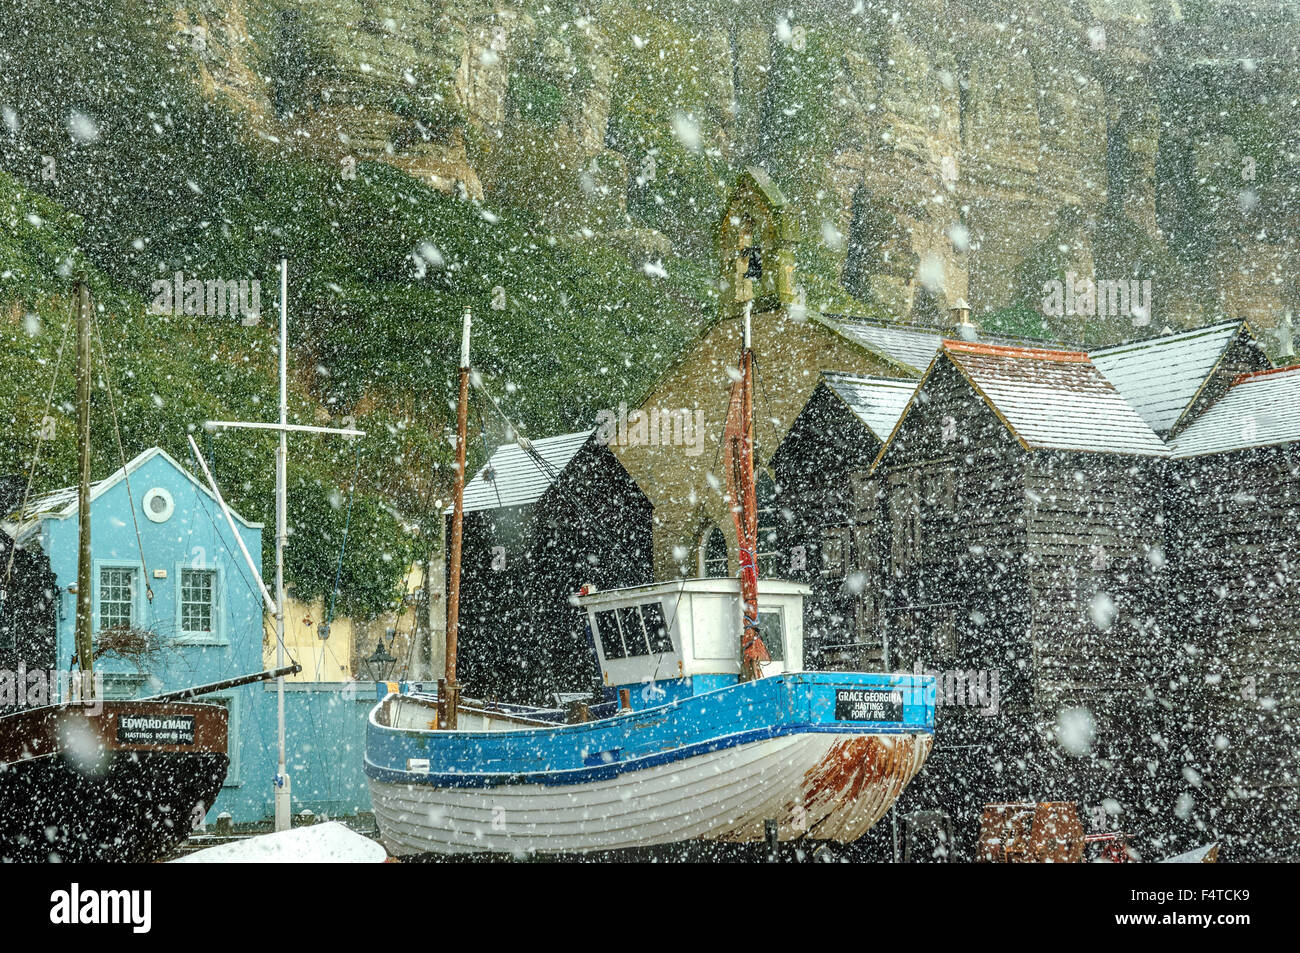 Snowing at Rock-a-Nore. Old town Hastings. England.UK - Stock Image